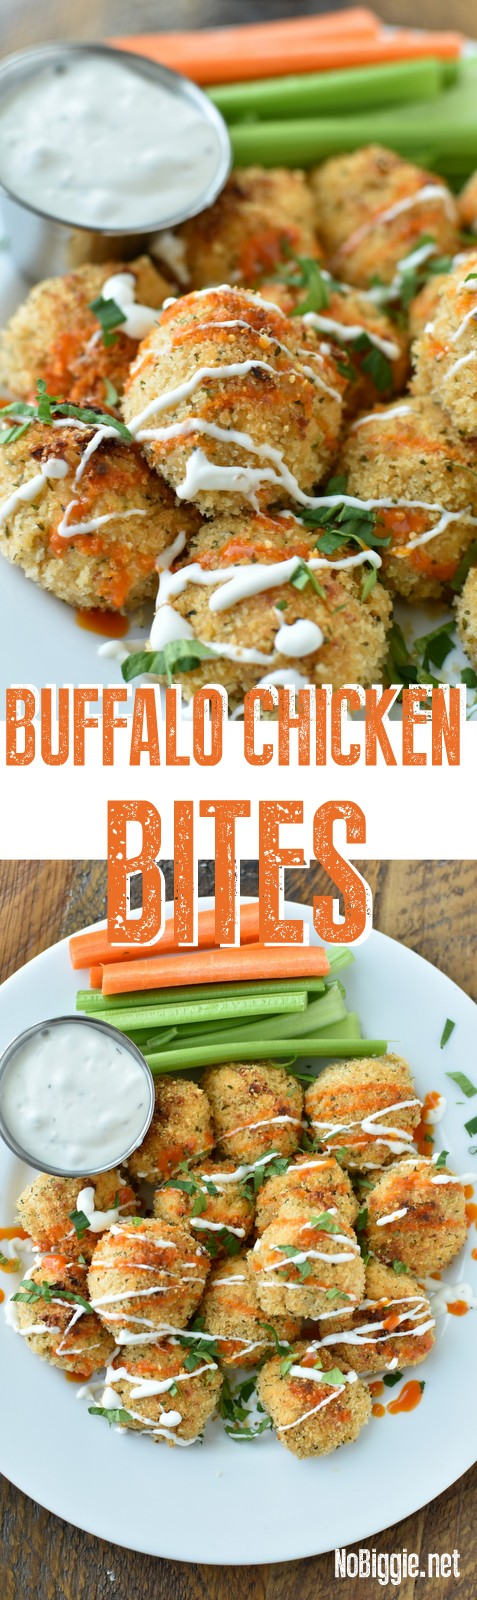 Buffalo Chicken Bites - They are sure to please the crowd. #Buffalochickenbites #buffalochicken #gamedayeats #chickenrecipes #chicken